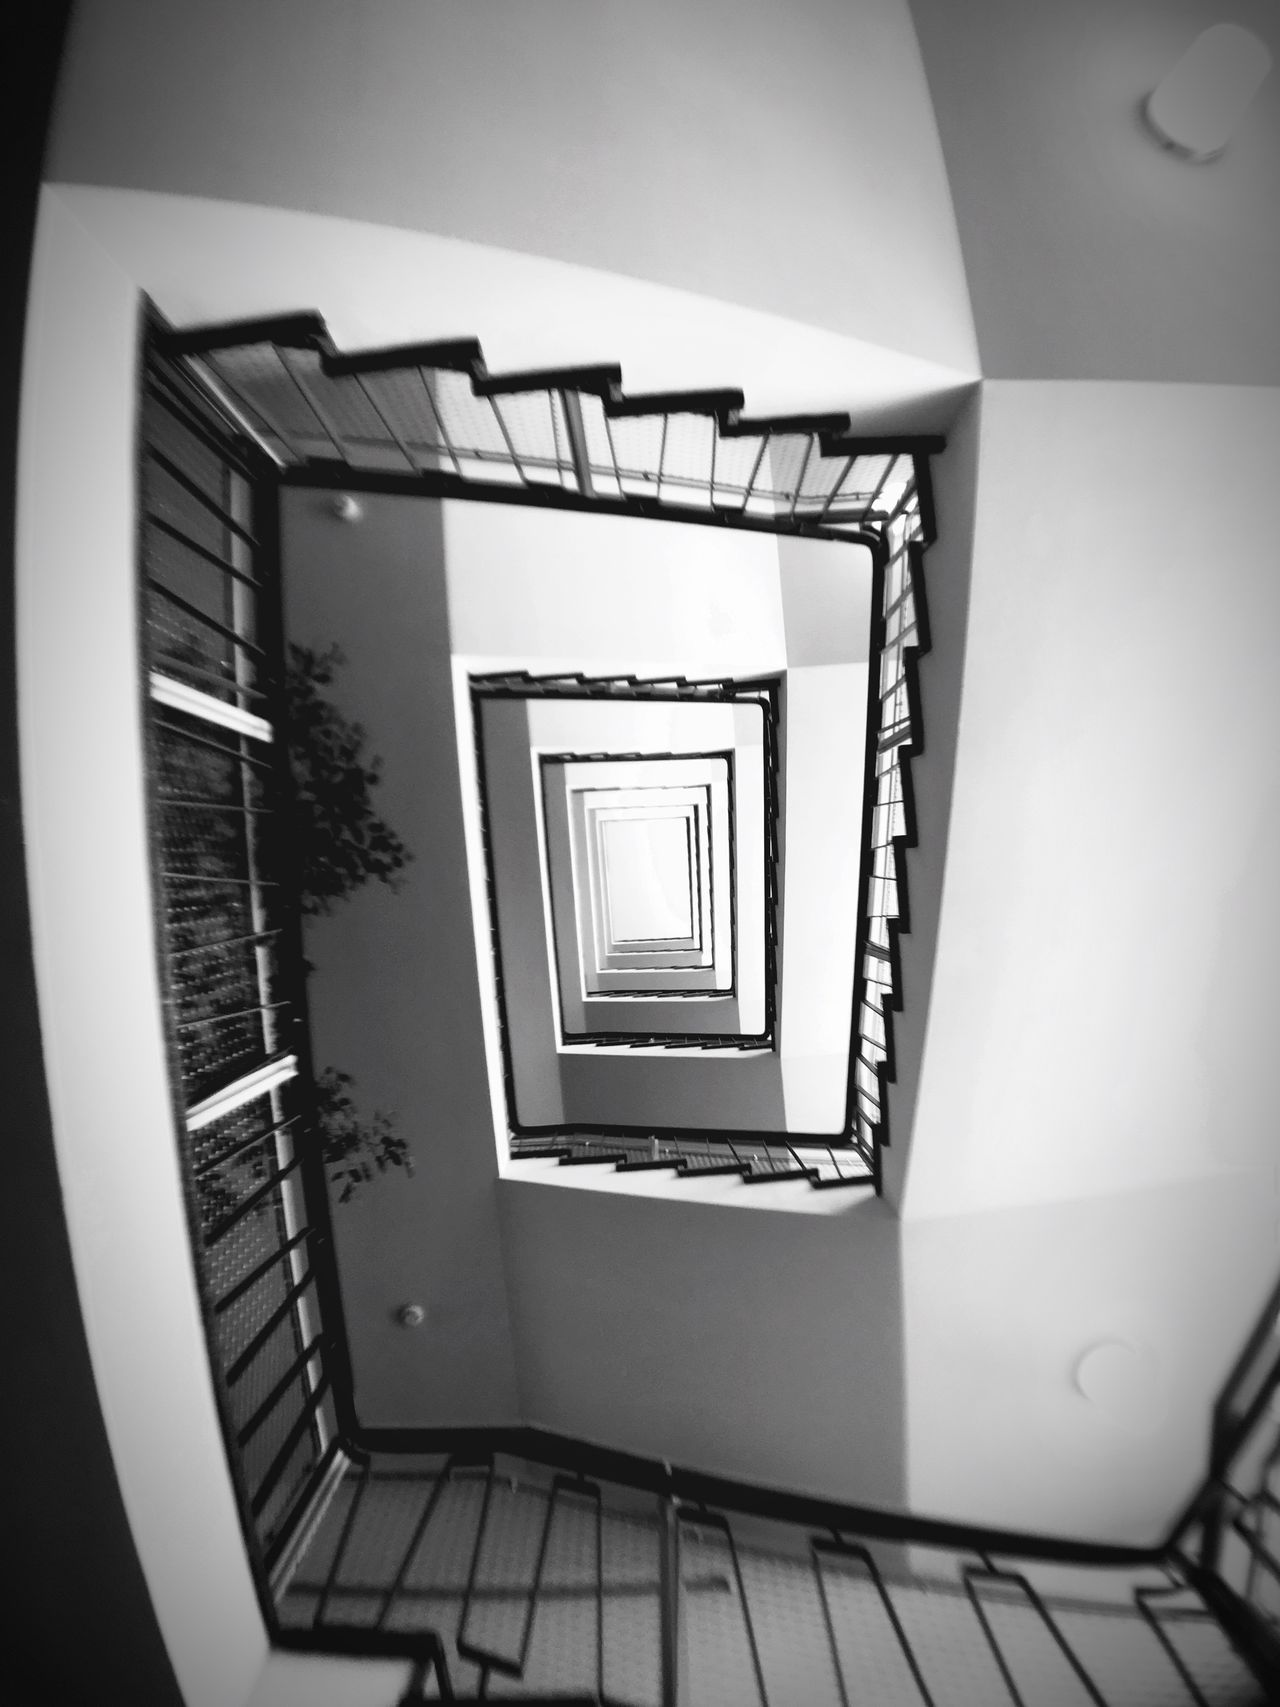 Stasi museum Stasi Museum Stairs Pivotal Ideas Check This Out Taking Photos Memorizing Blackandwhite Black And White No Color